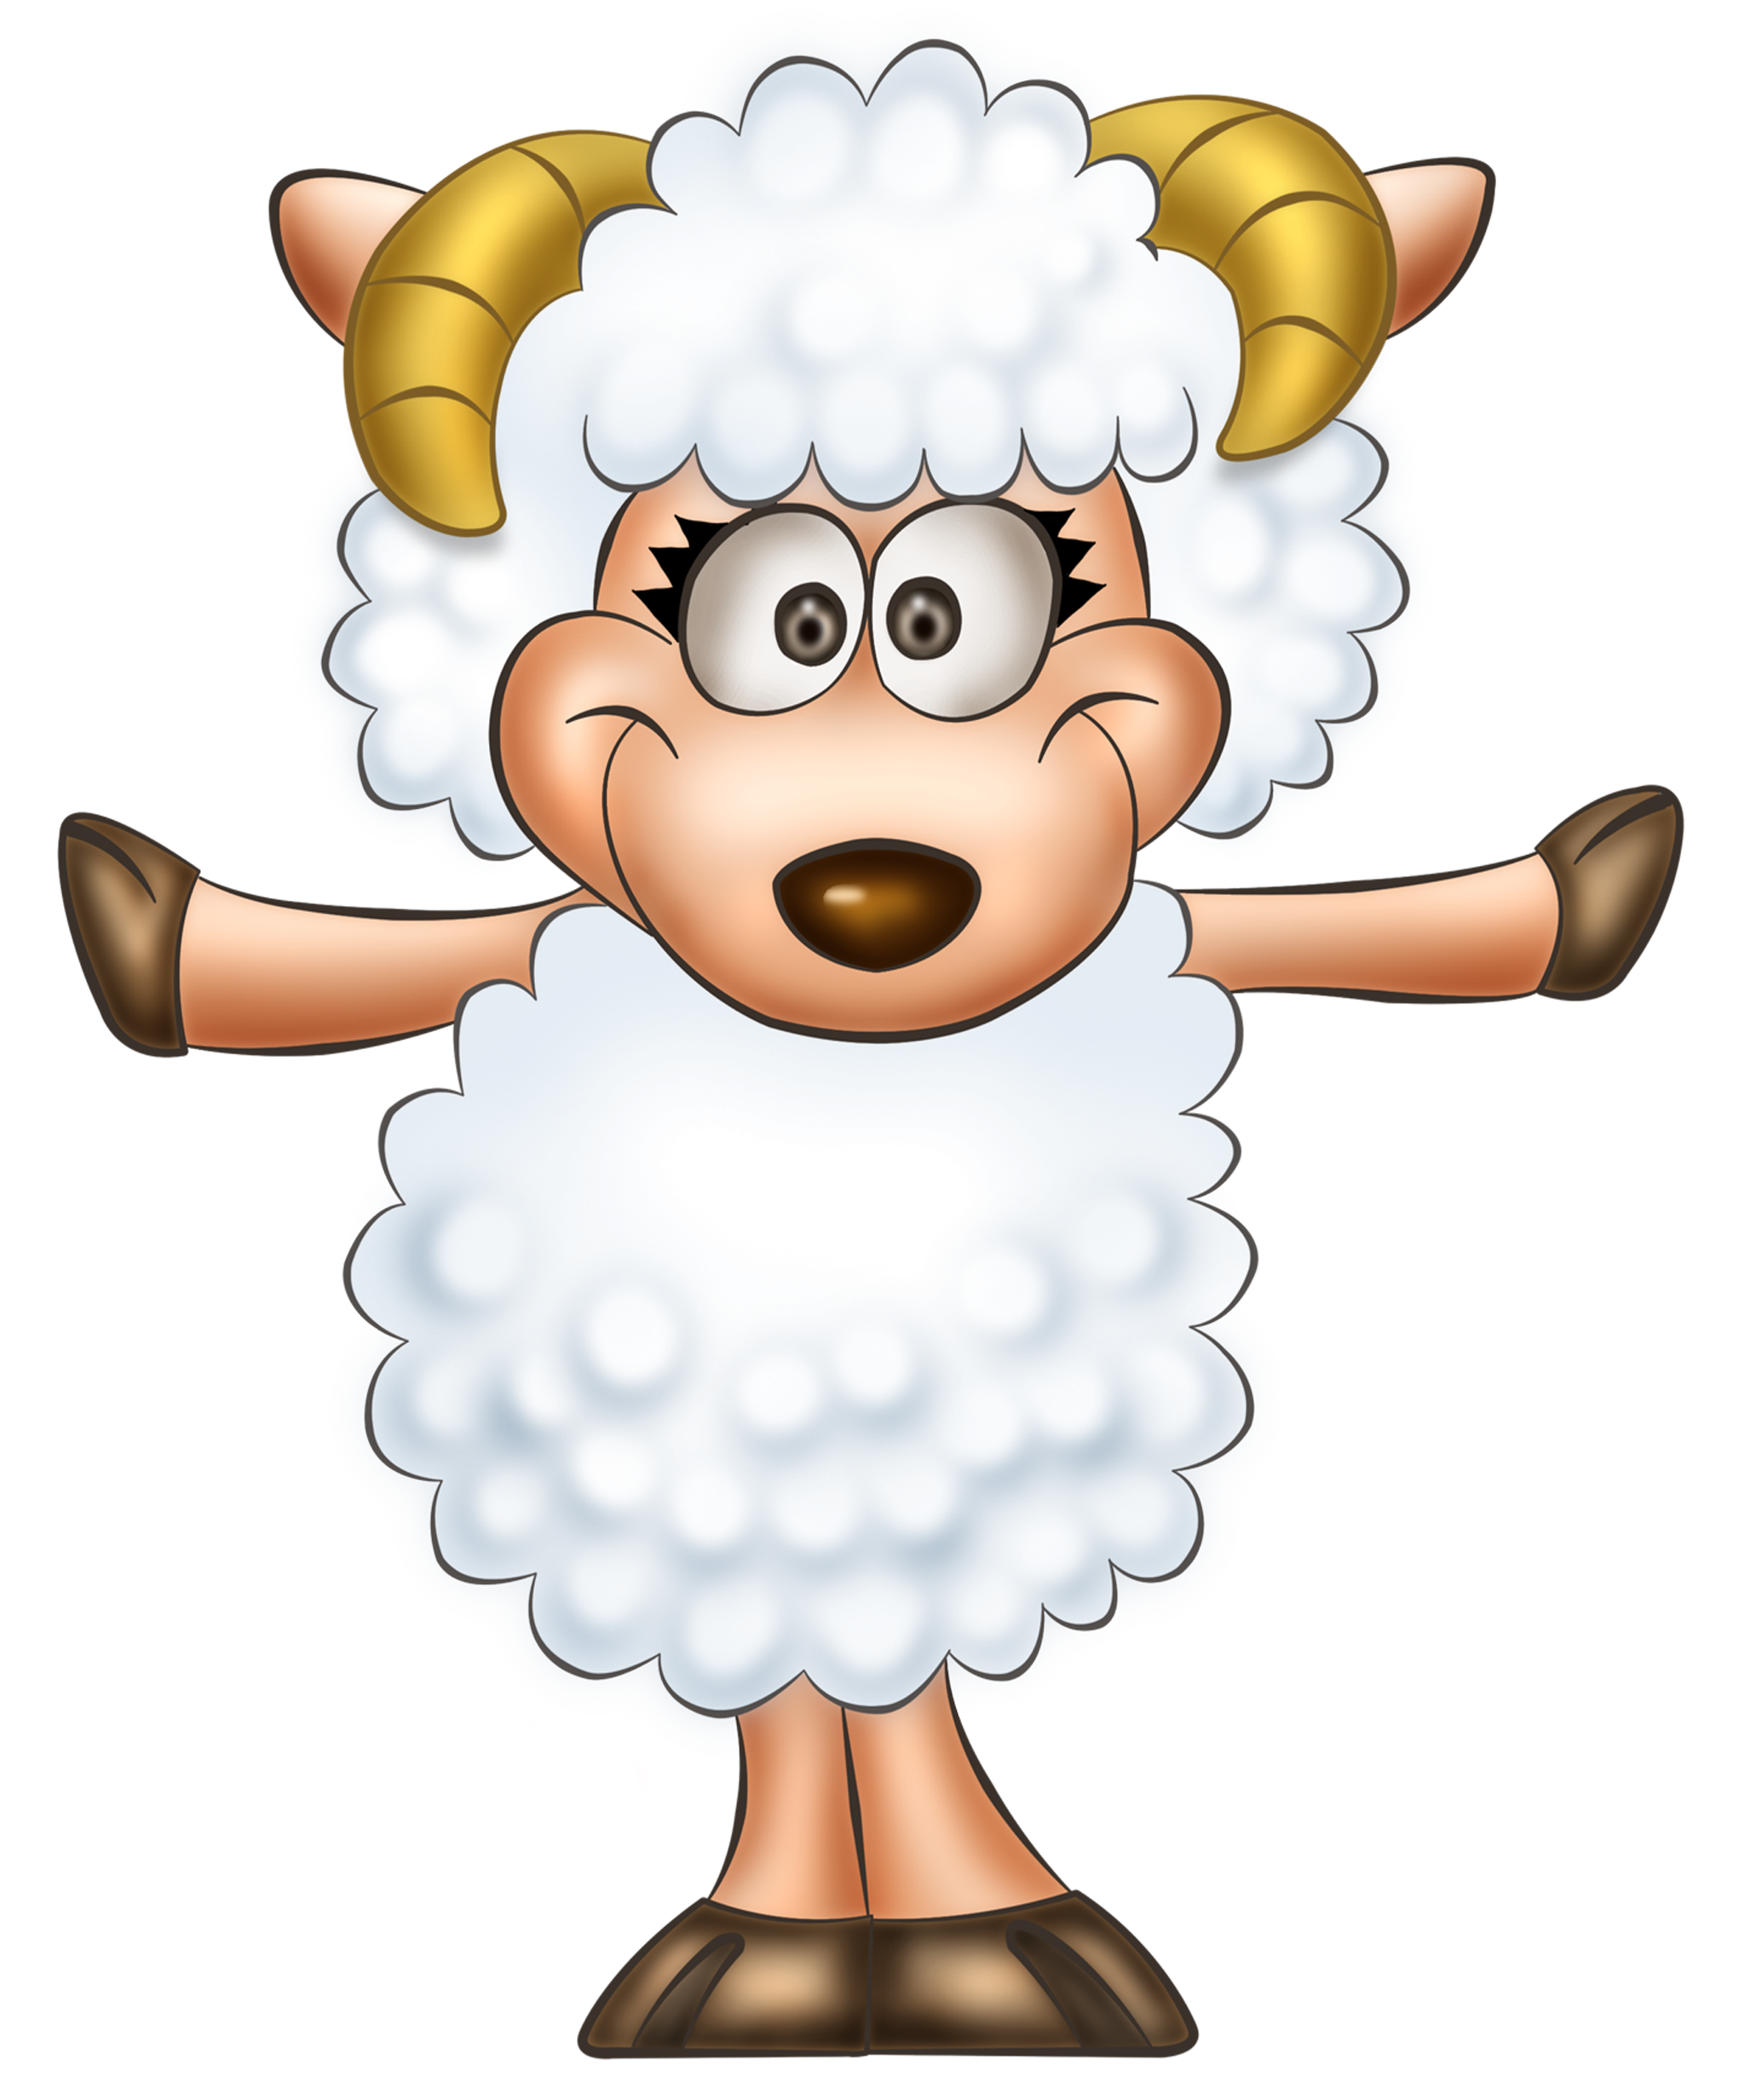 Sheep clipart transparent background. Cute gallery yopriceville high